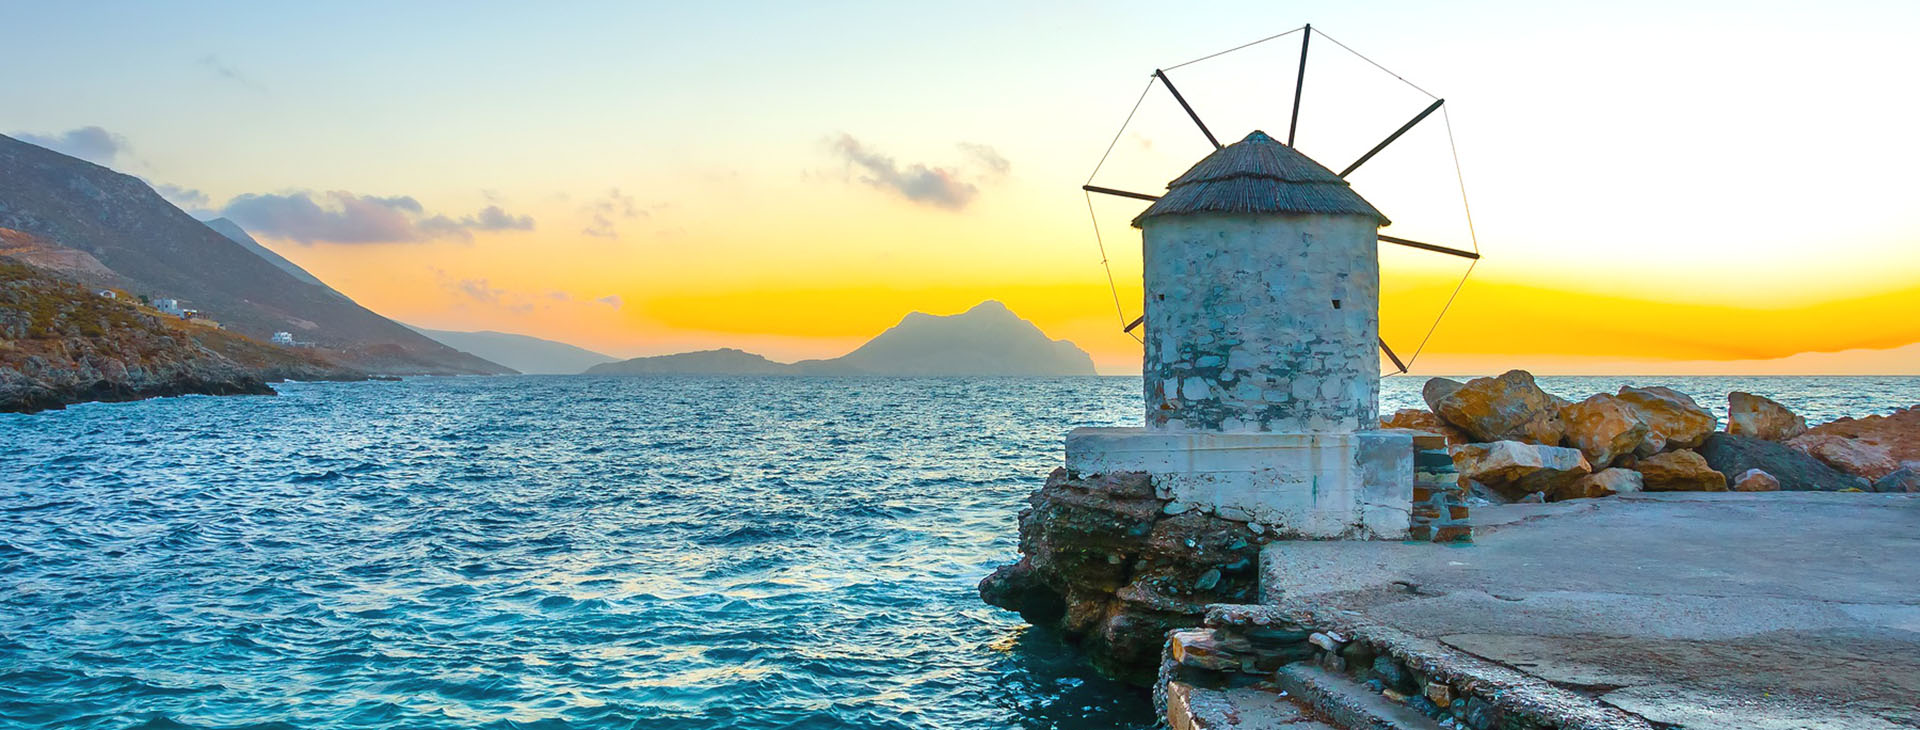 Traditional windmill by the port of Aigiali village, Amorgos island